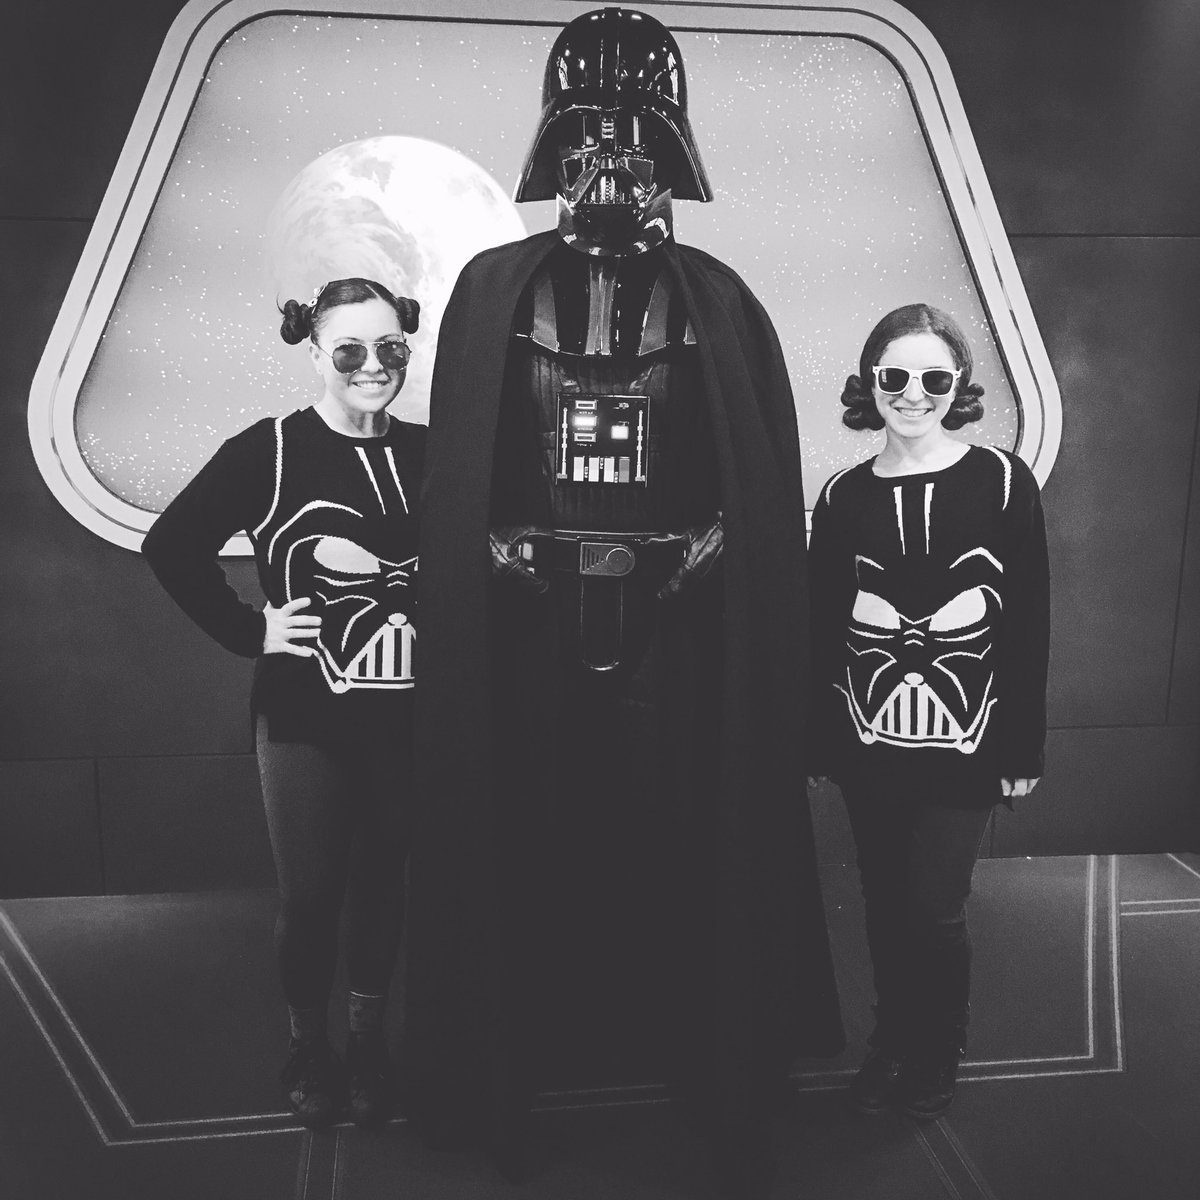 @HerUniverse our week at #Disneyland wouldn't have been the same without your #StarWars Darth Vader sweaters ❤